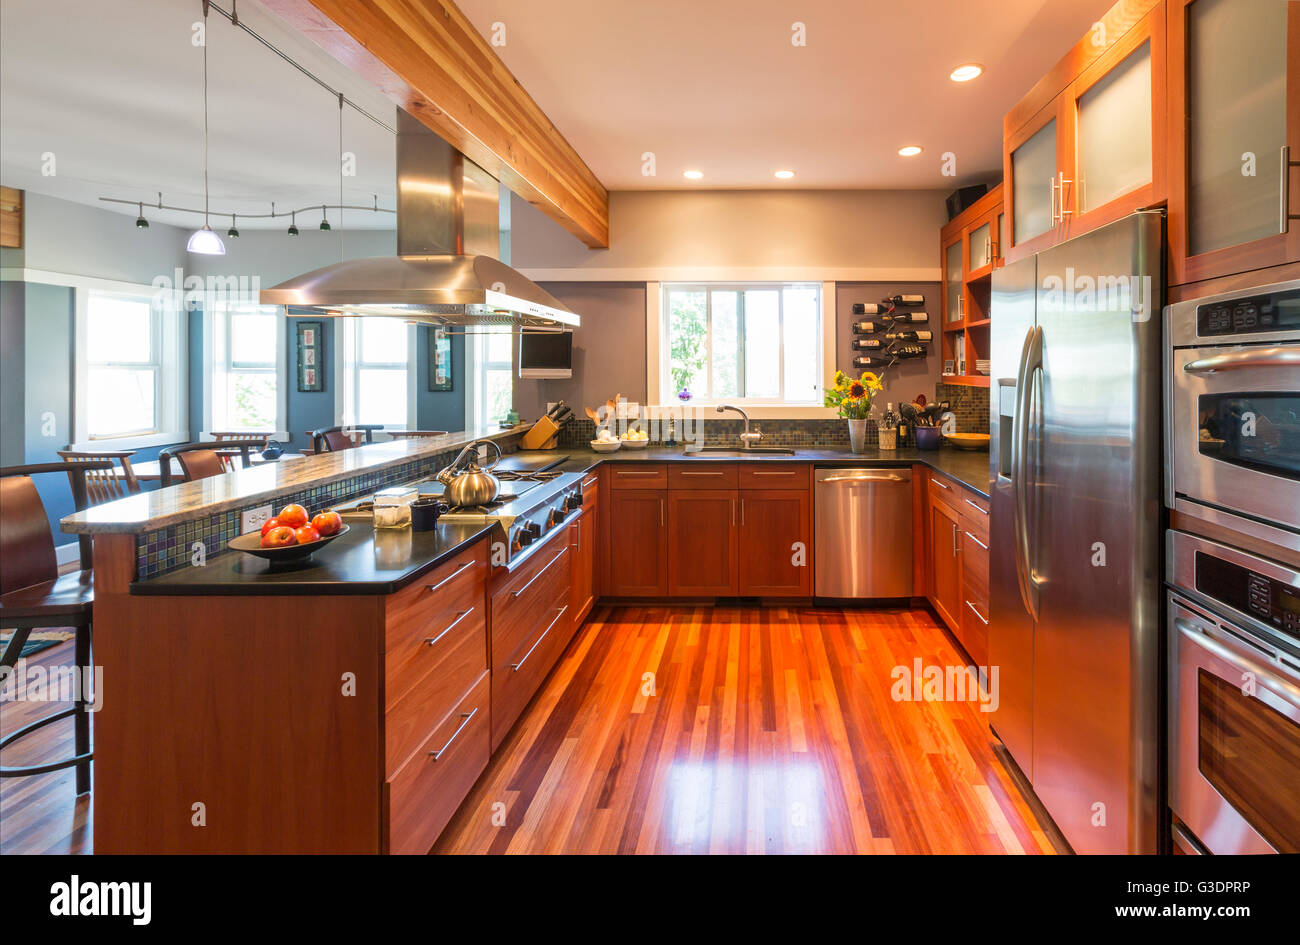 Spacious, contemporary upscale home kitchen interior with wood cabinets & floors, accent lighting & stainless - Stock Image